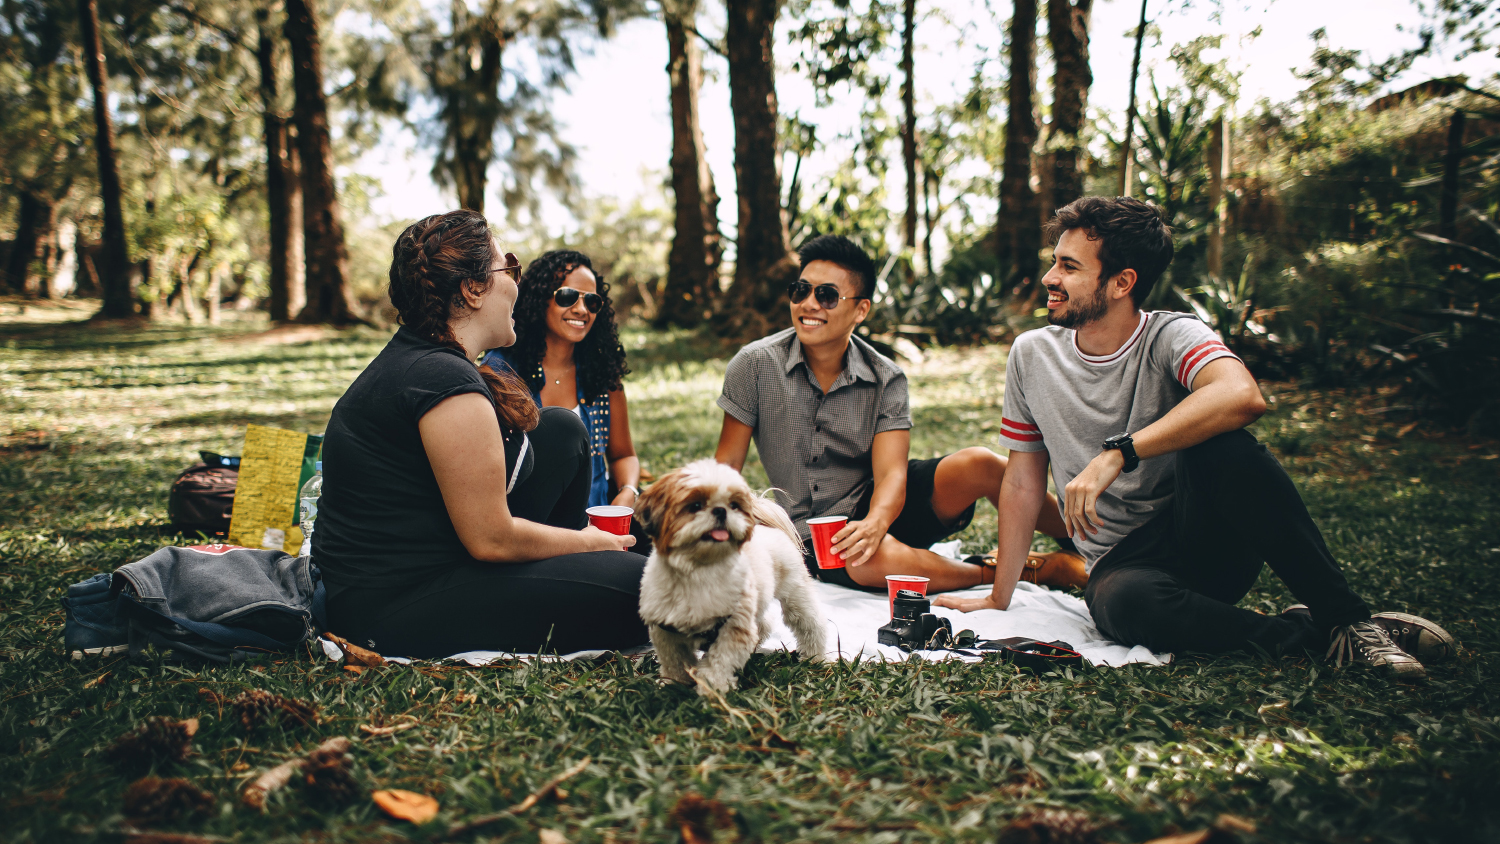 Friends enjoy a picnic in the woods.